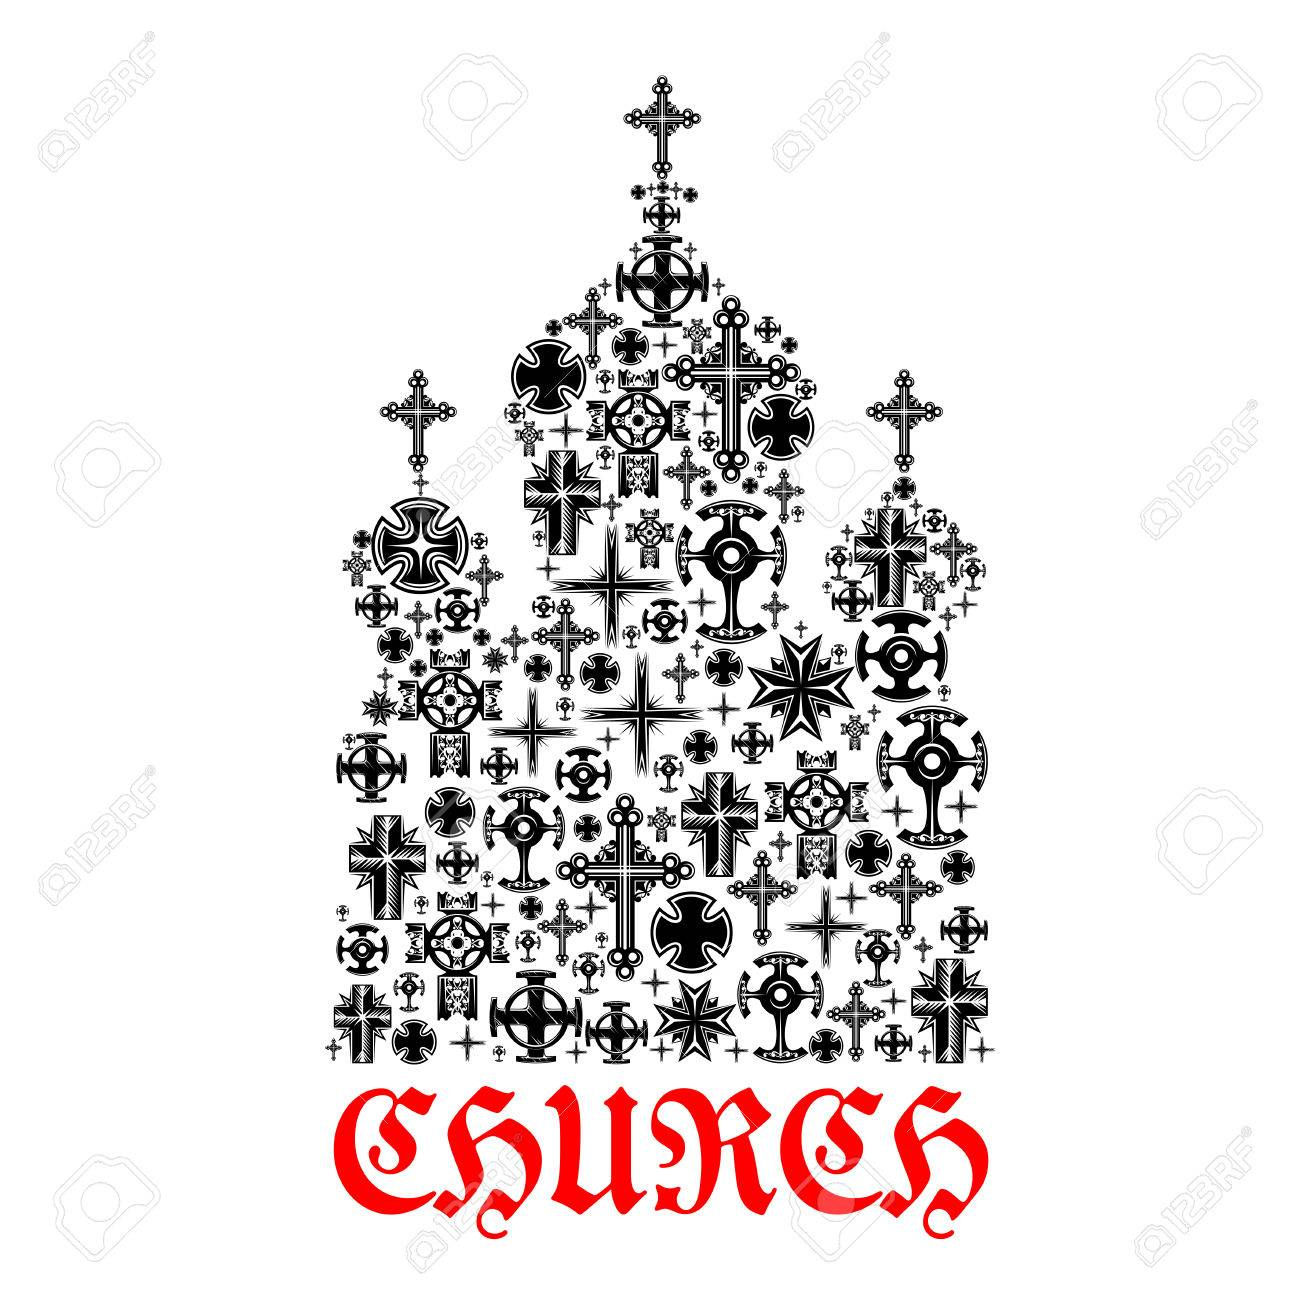 Church icon religion christianity cross symbols in shape of church icon religion christianity cross symbols in shape of temple for religious decoration emblem and buycottarizona Gallery